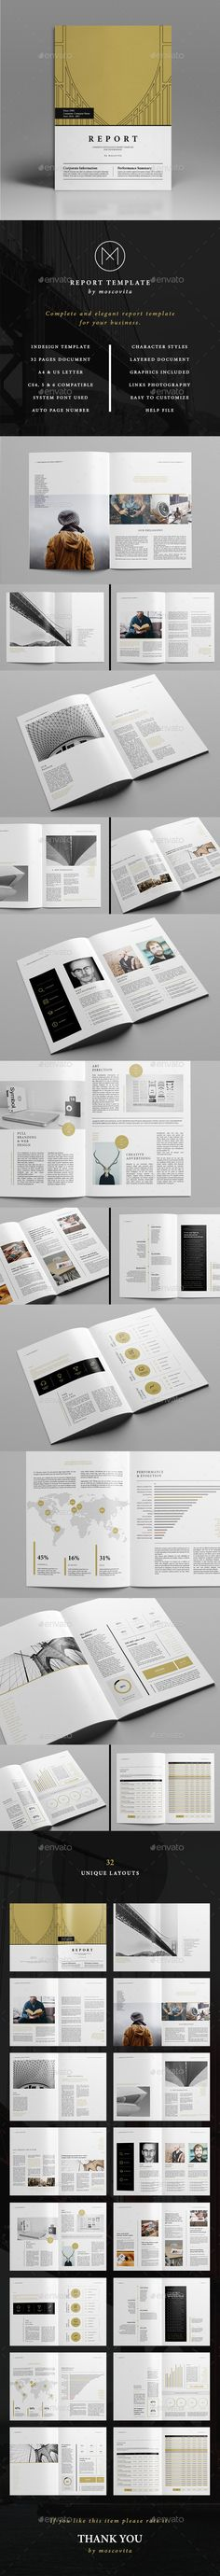 Like the photos crossing to the next page, very artistic looking but with text